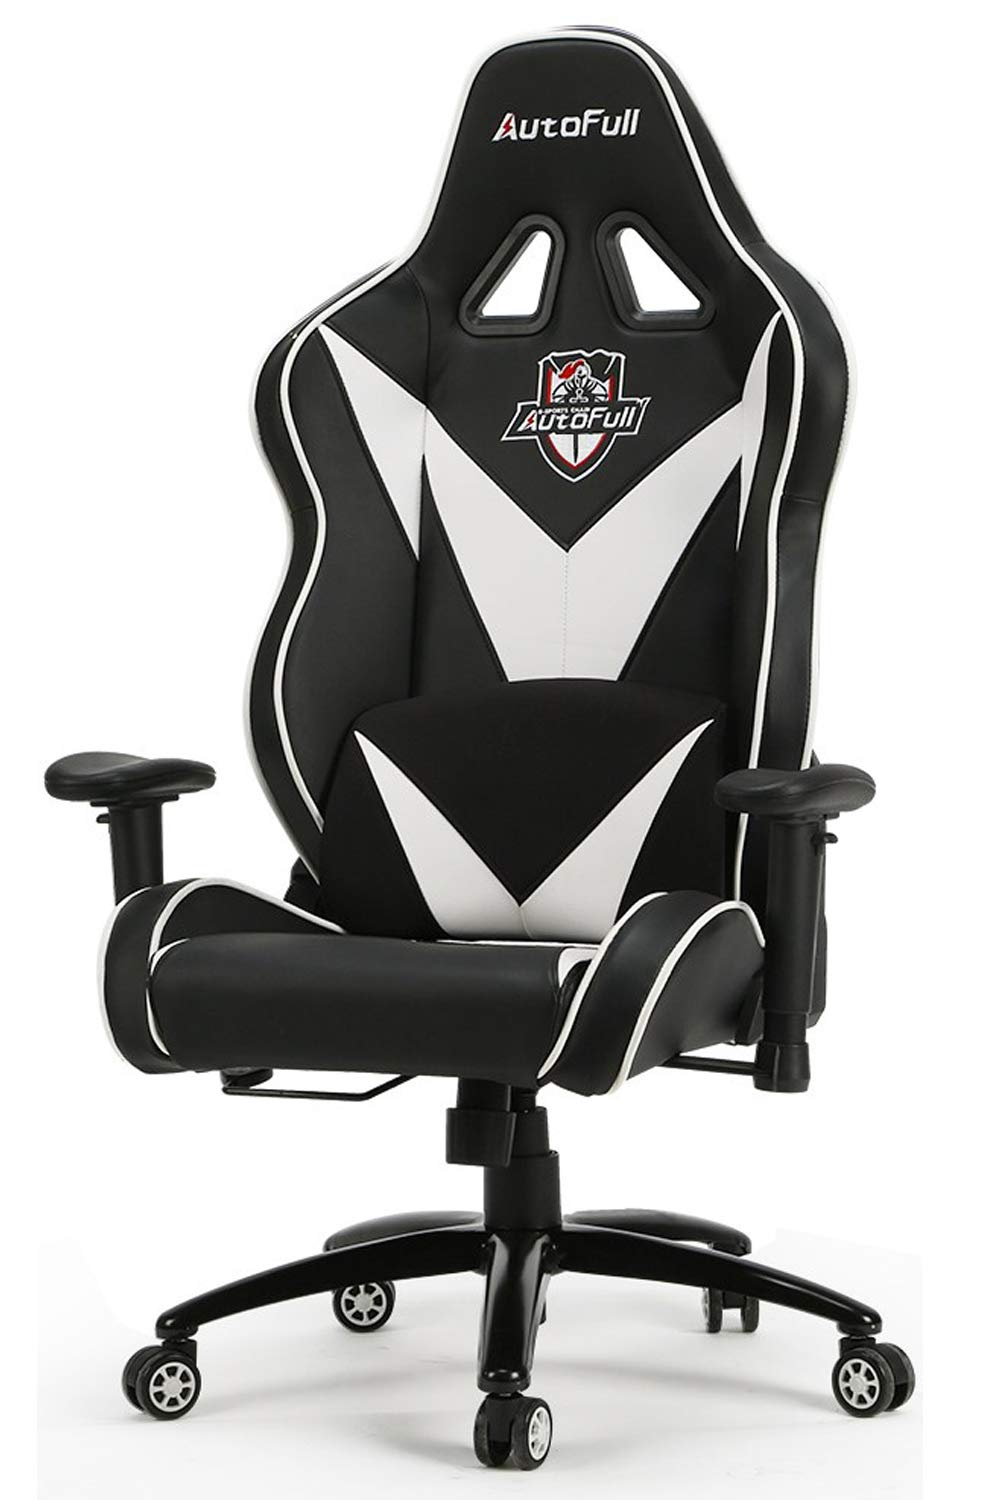 BestOffice Racing Style Ergonomic Rolling Swivel Adjustable Headrest Office Gaming Chair with Lumbar Support, White